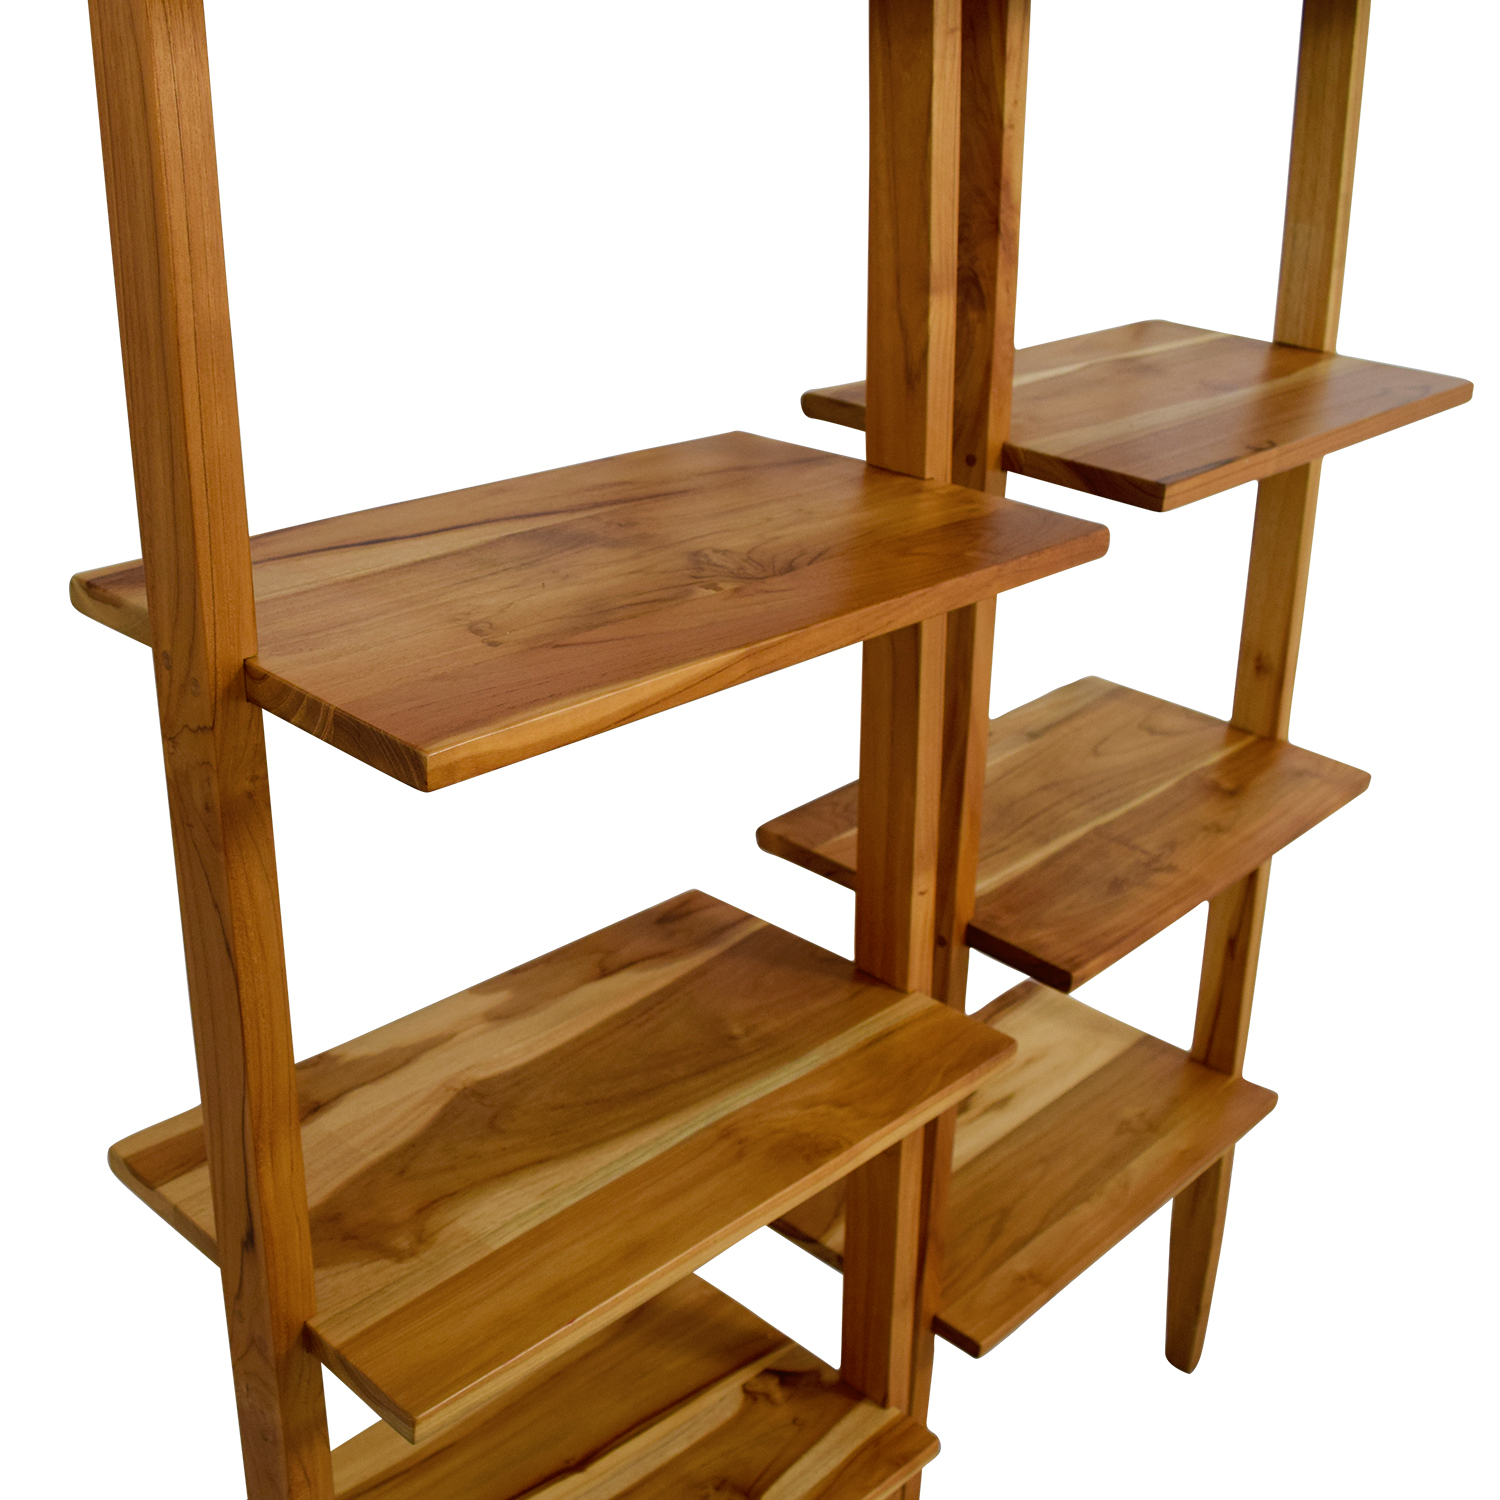 buy Room & Board Wood Ladder Bookshelves Room & Board Bookcases & Shelving